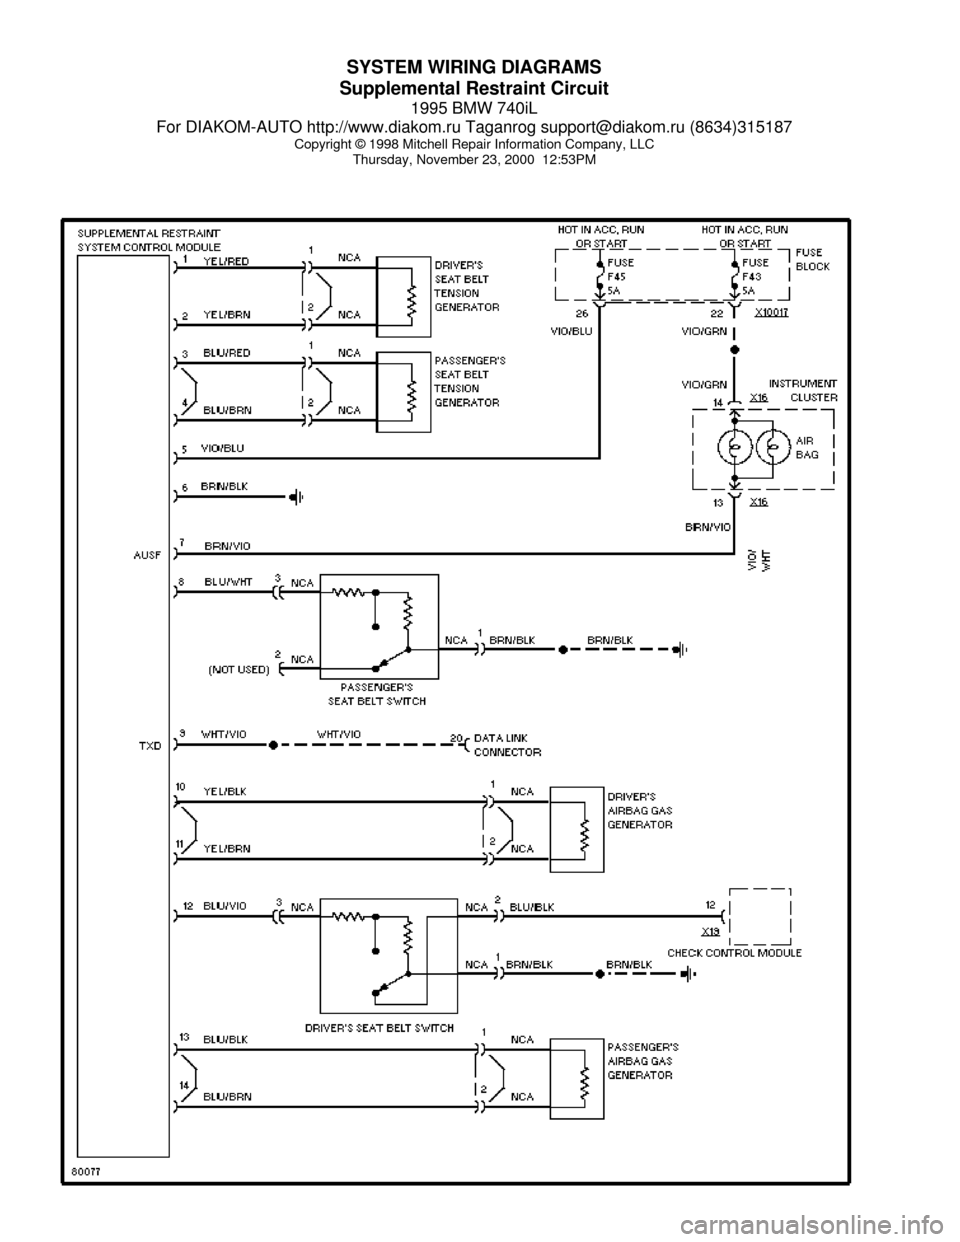 740i Fuse Diagram For Wiring Will Be A Thing 2009 Expedition 99 Bmw Box Diagrams 2011 Ford F 150